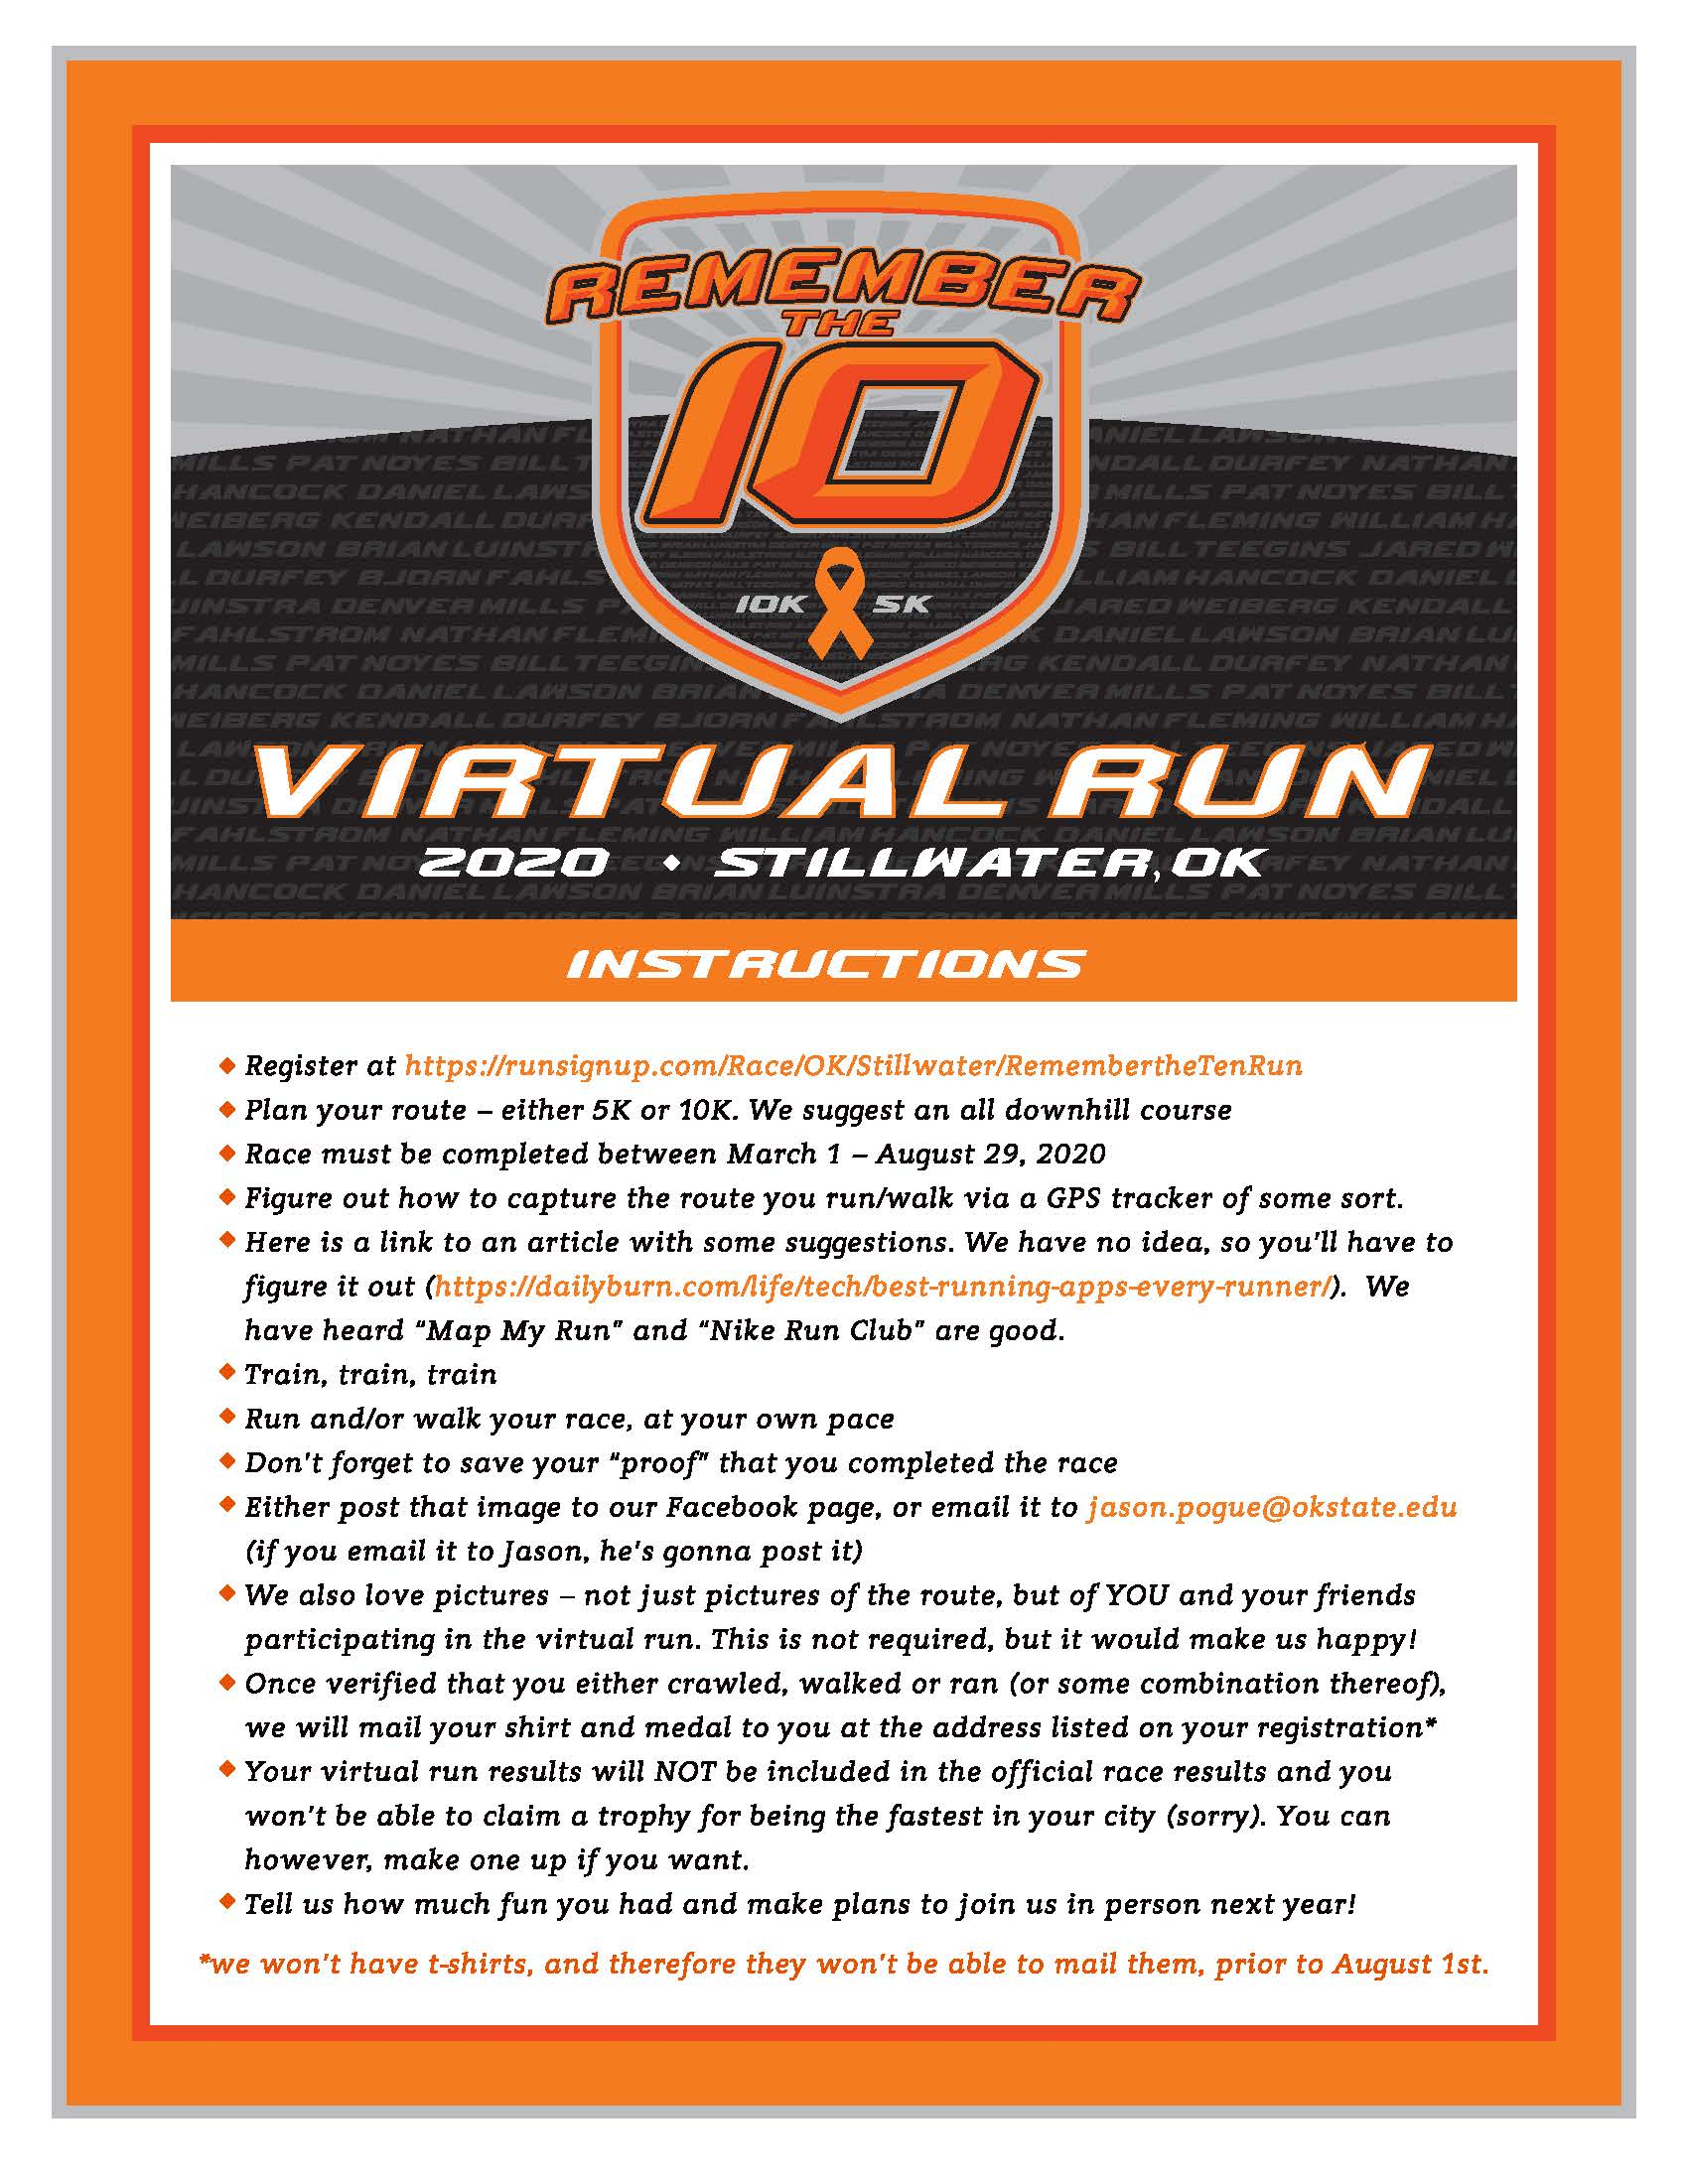 Virtual Run Flyer - Updated March 17th